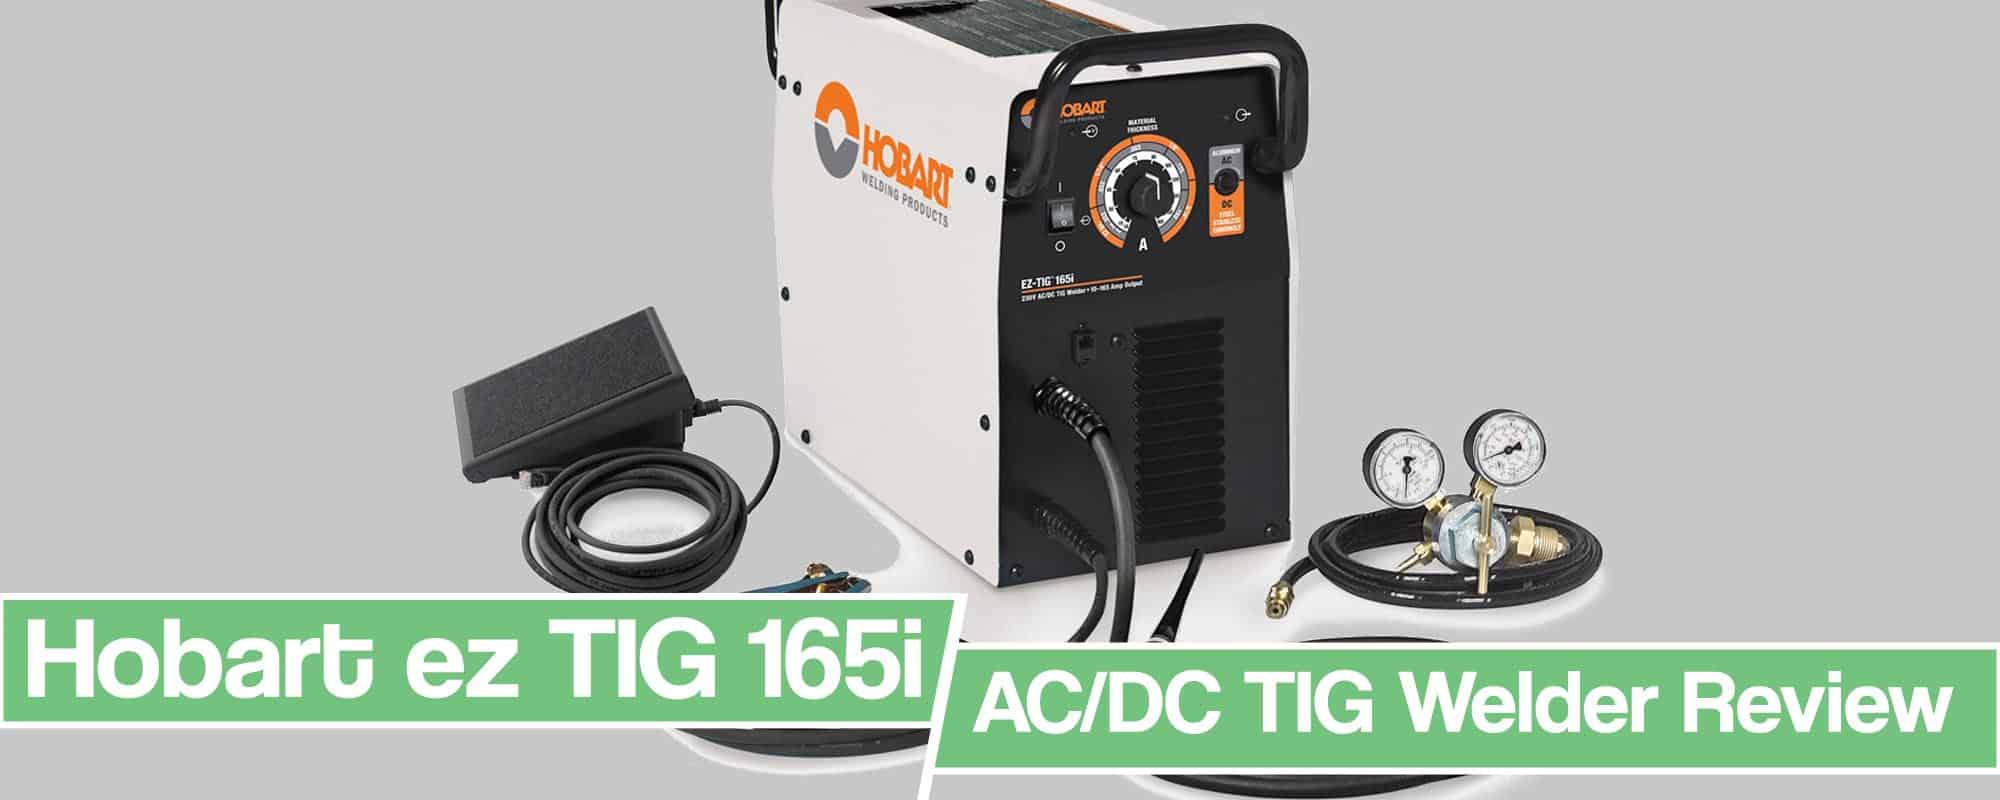 Feature image for Hobart ez TIG 165 Review Review article